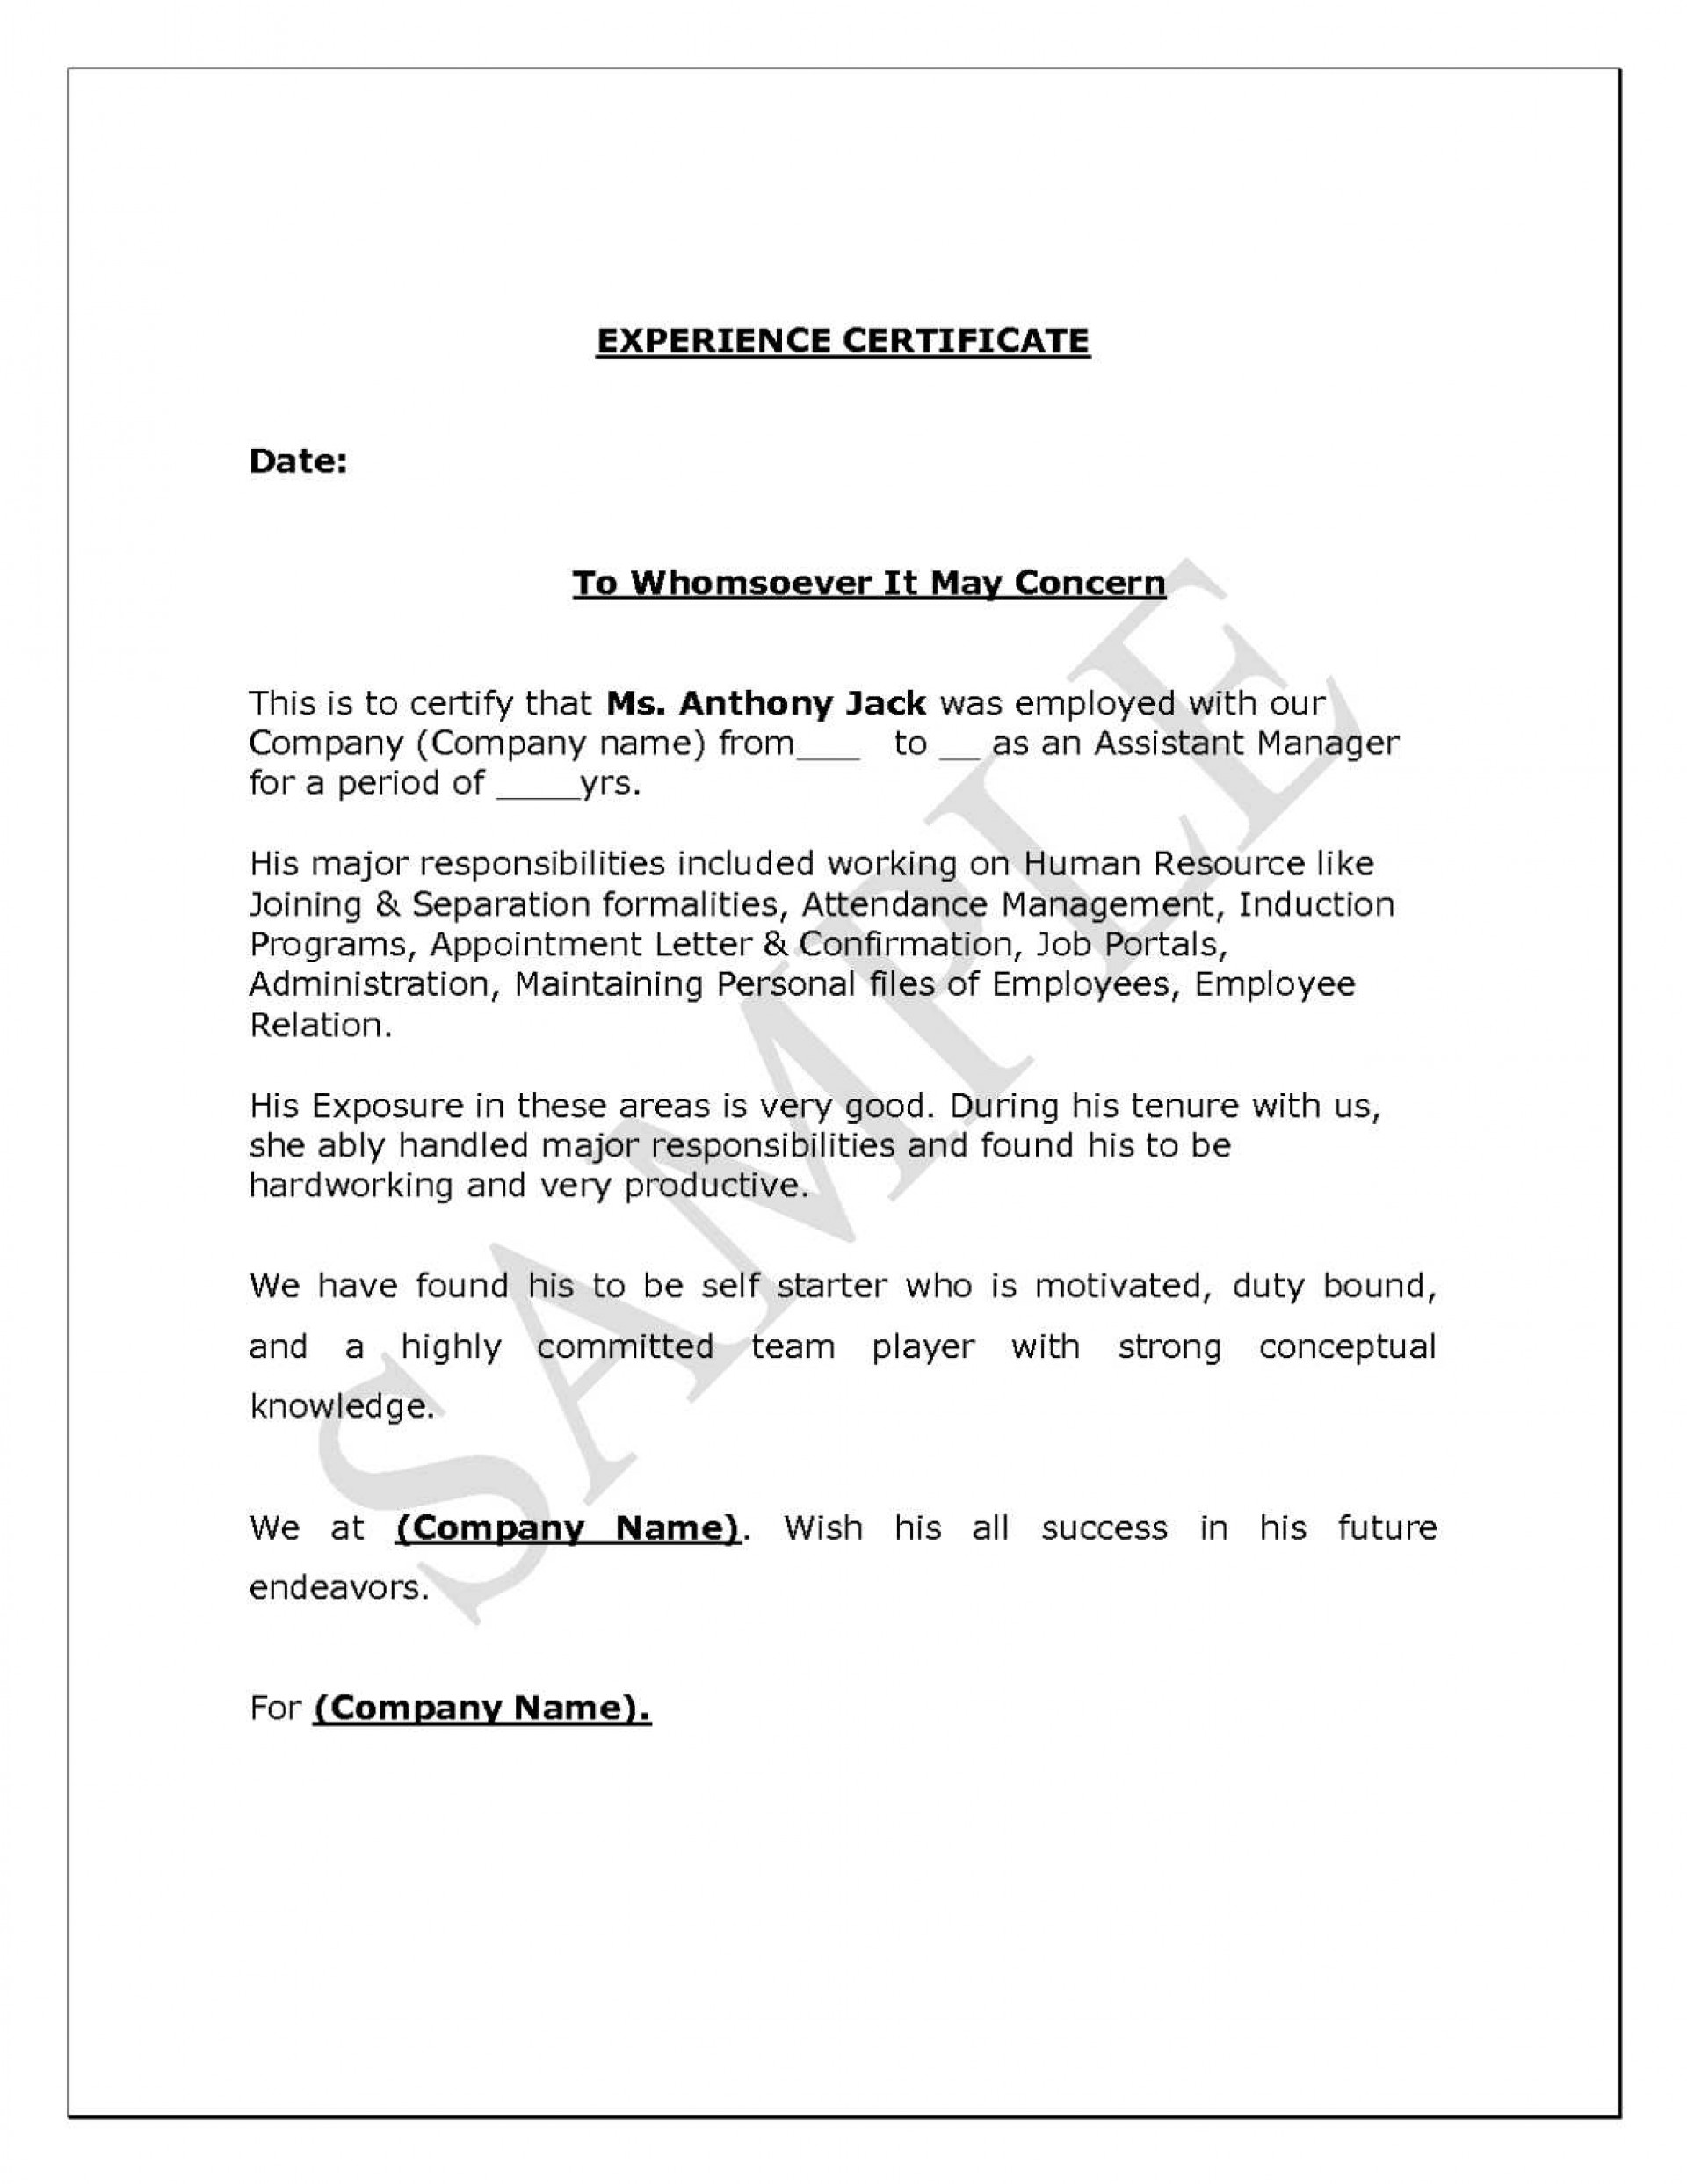 018 Personal Narrative Essay Topics Example Job Certificate Excellent For Middle School High Students 1920